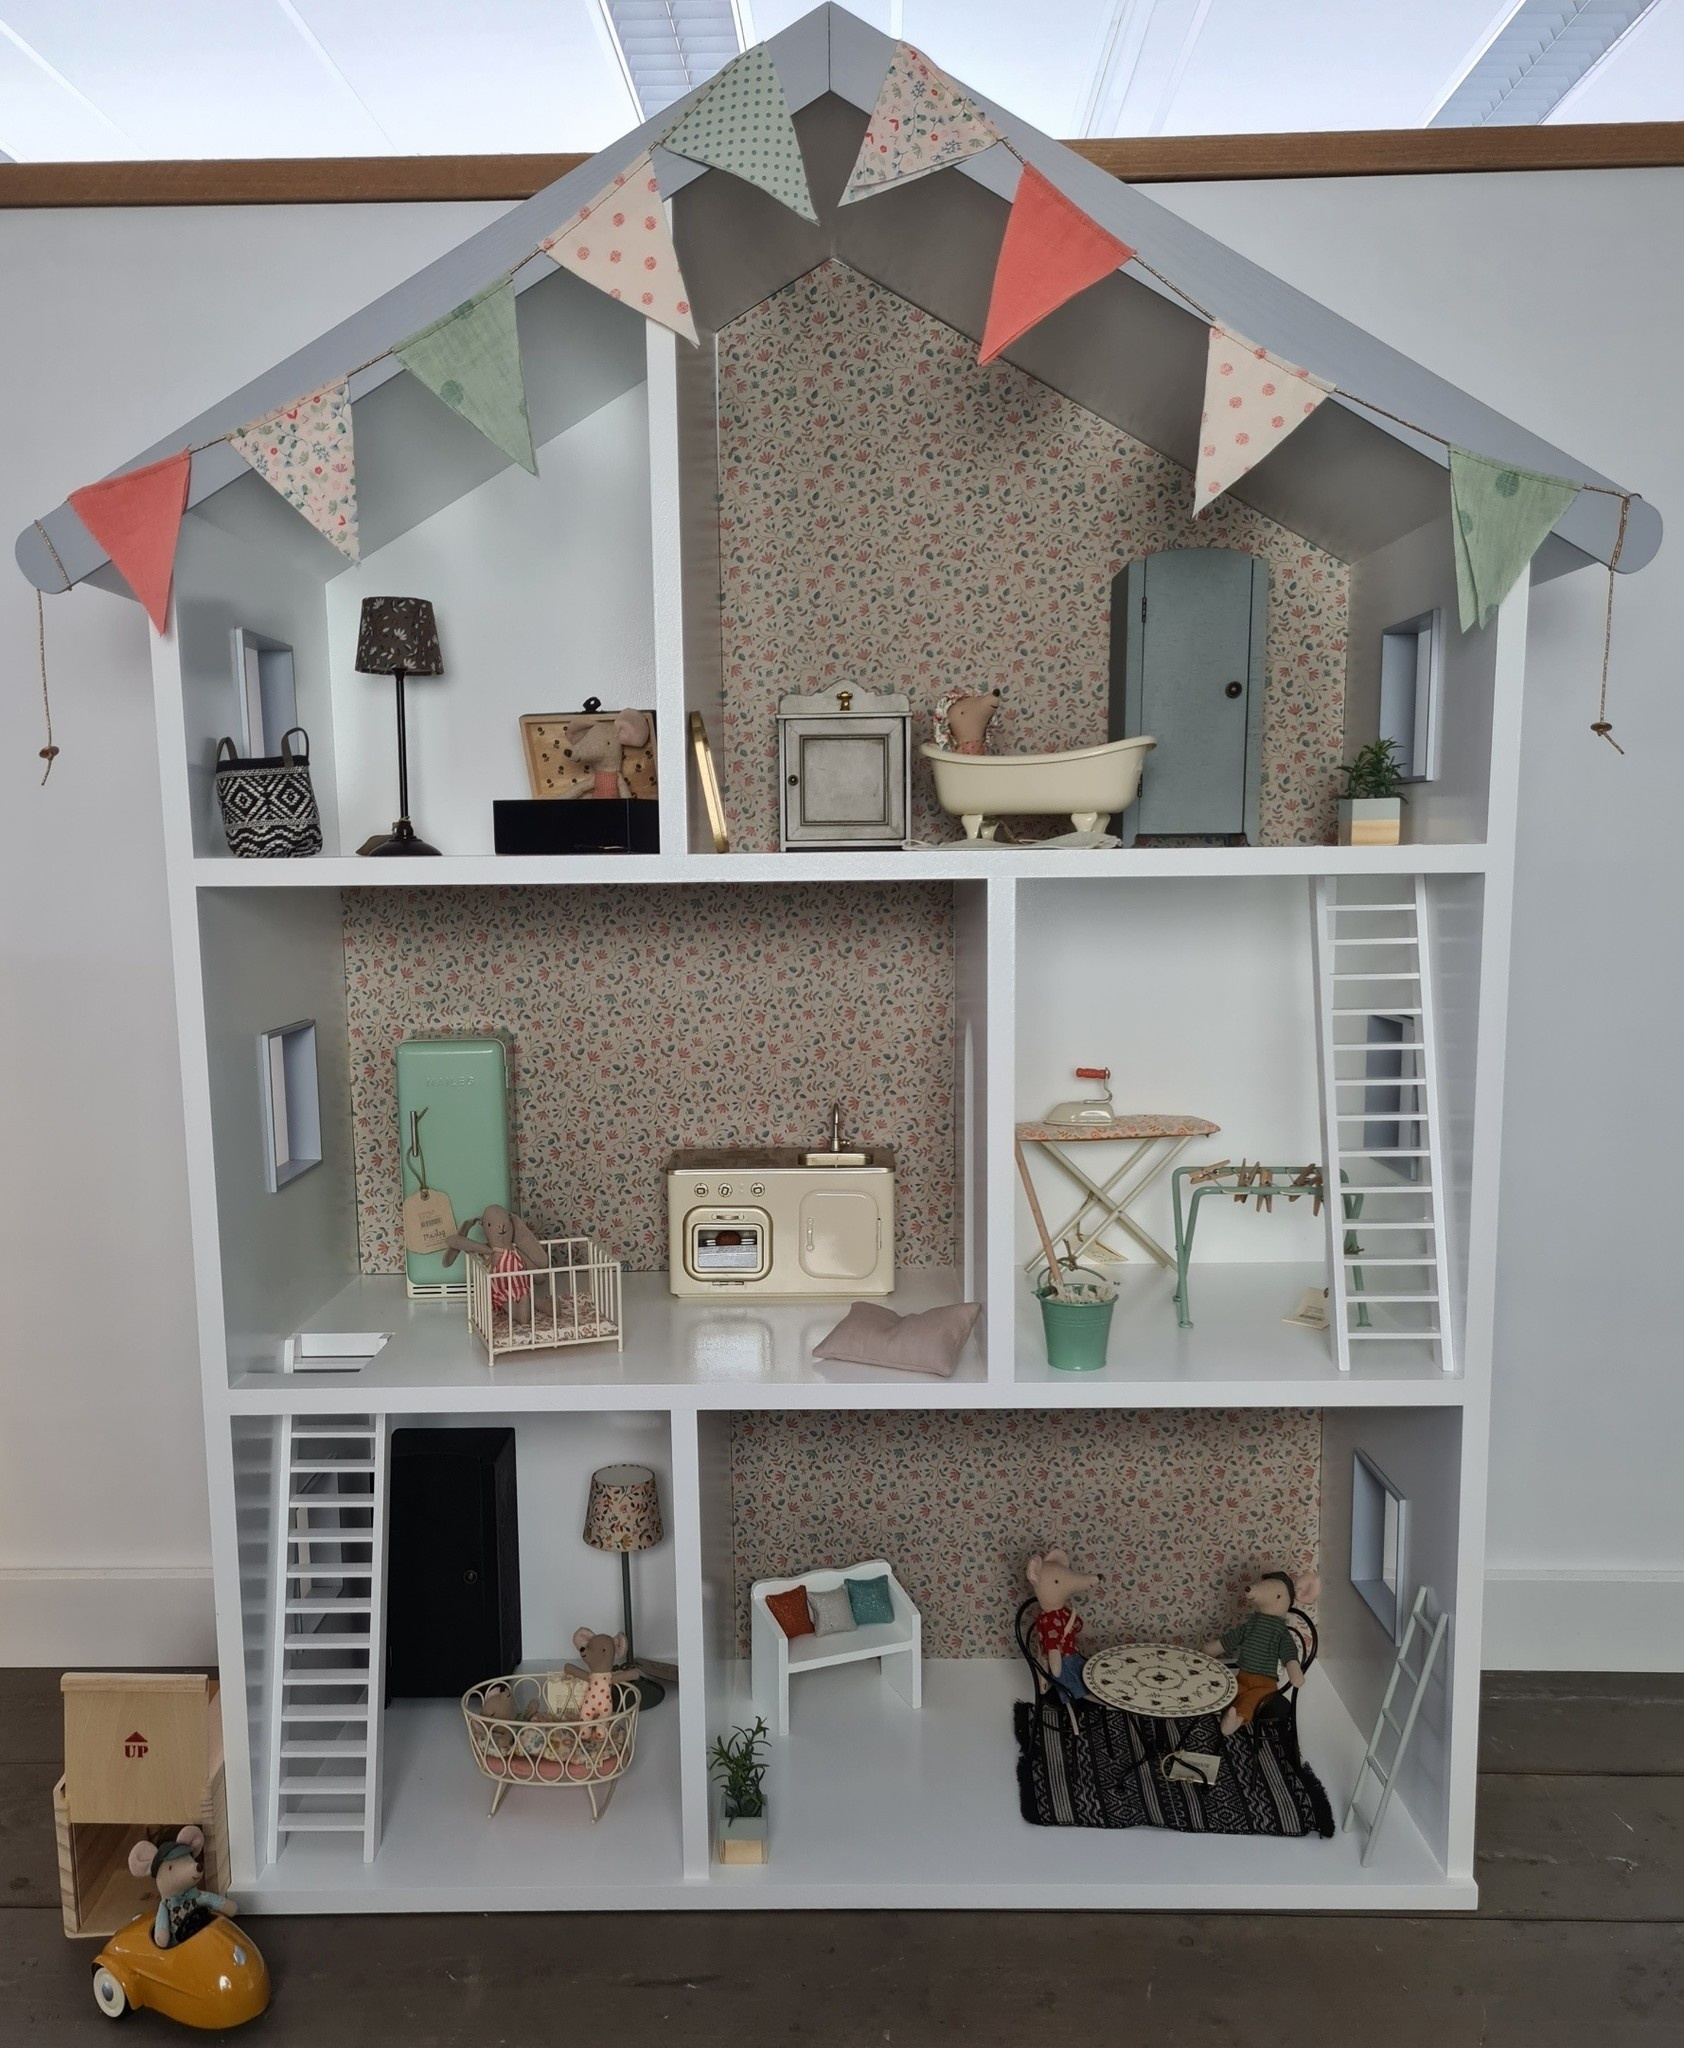 Maileg dollhouse with stairs and wallpaper-2